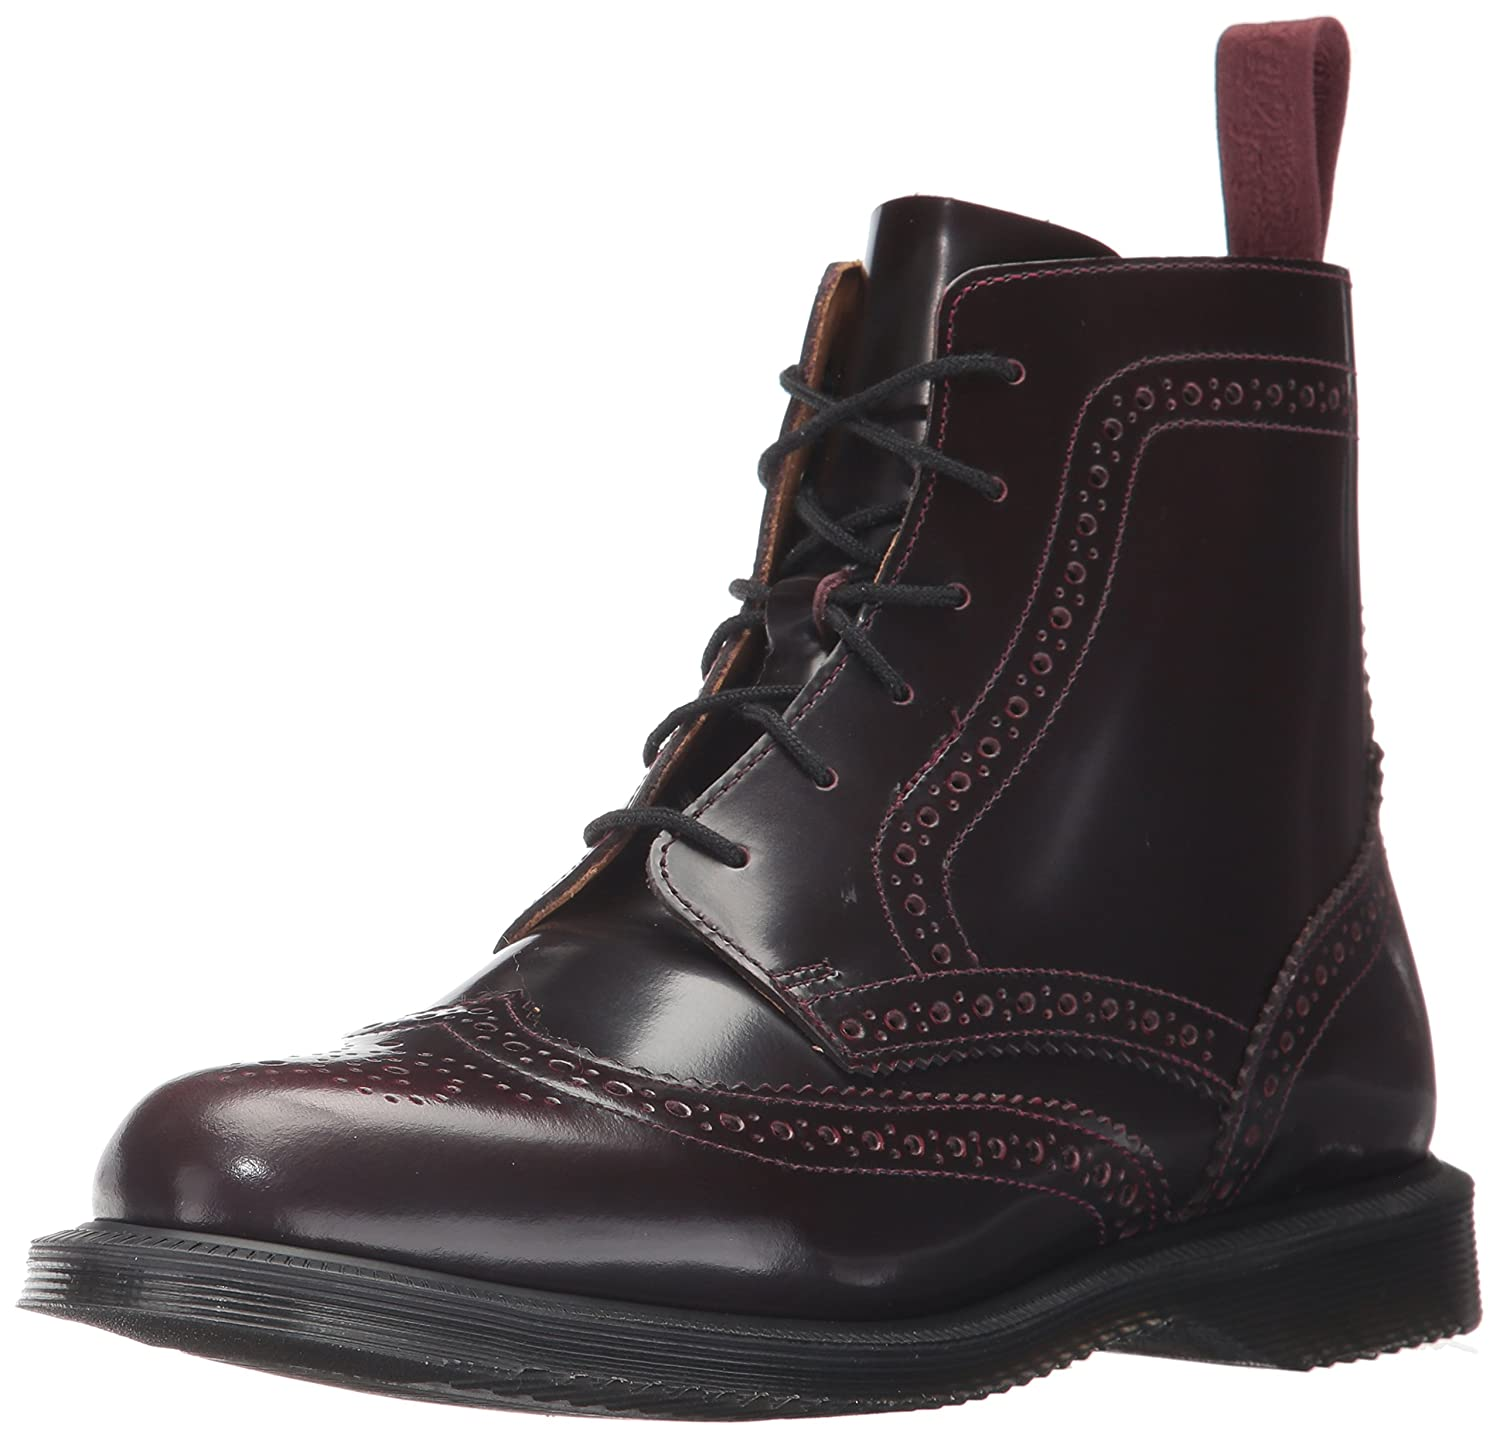 Dr. Martens Women's Delphine Red Arcadia Ankle Boot B01MY399KP 5 Medium UK (7 US)|Cherry Red